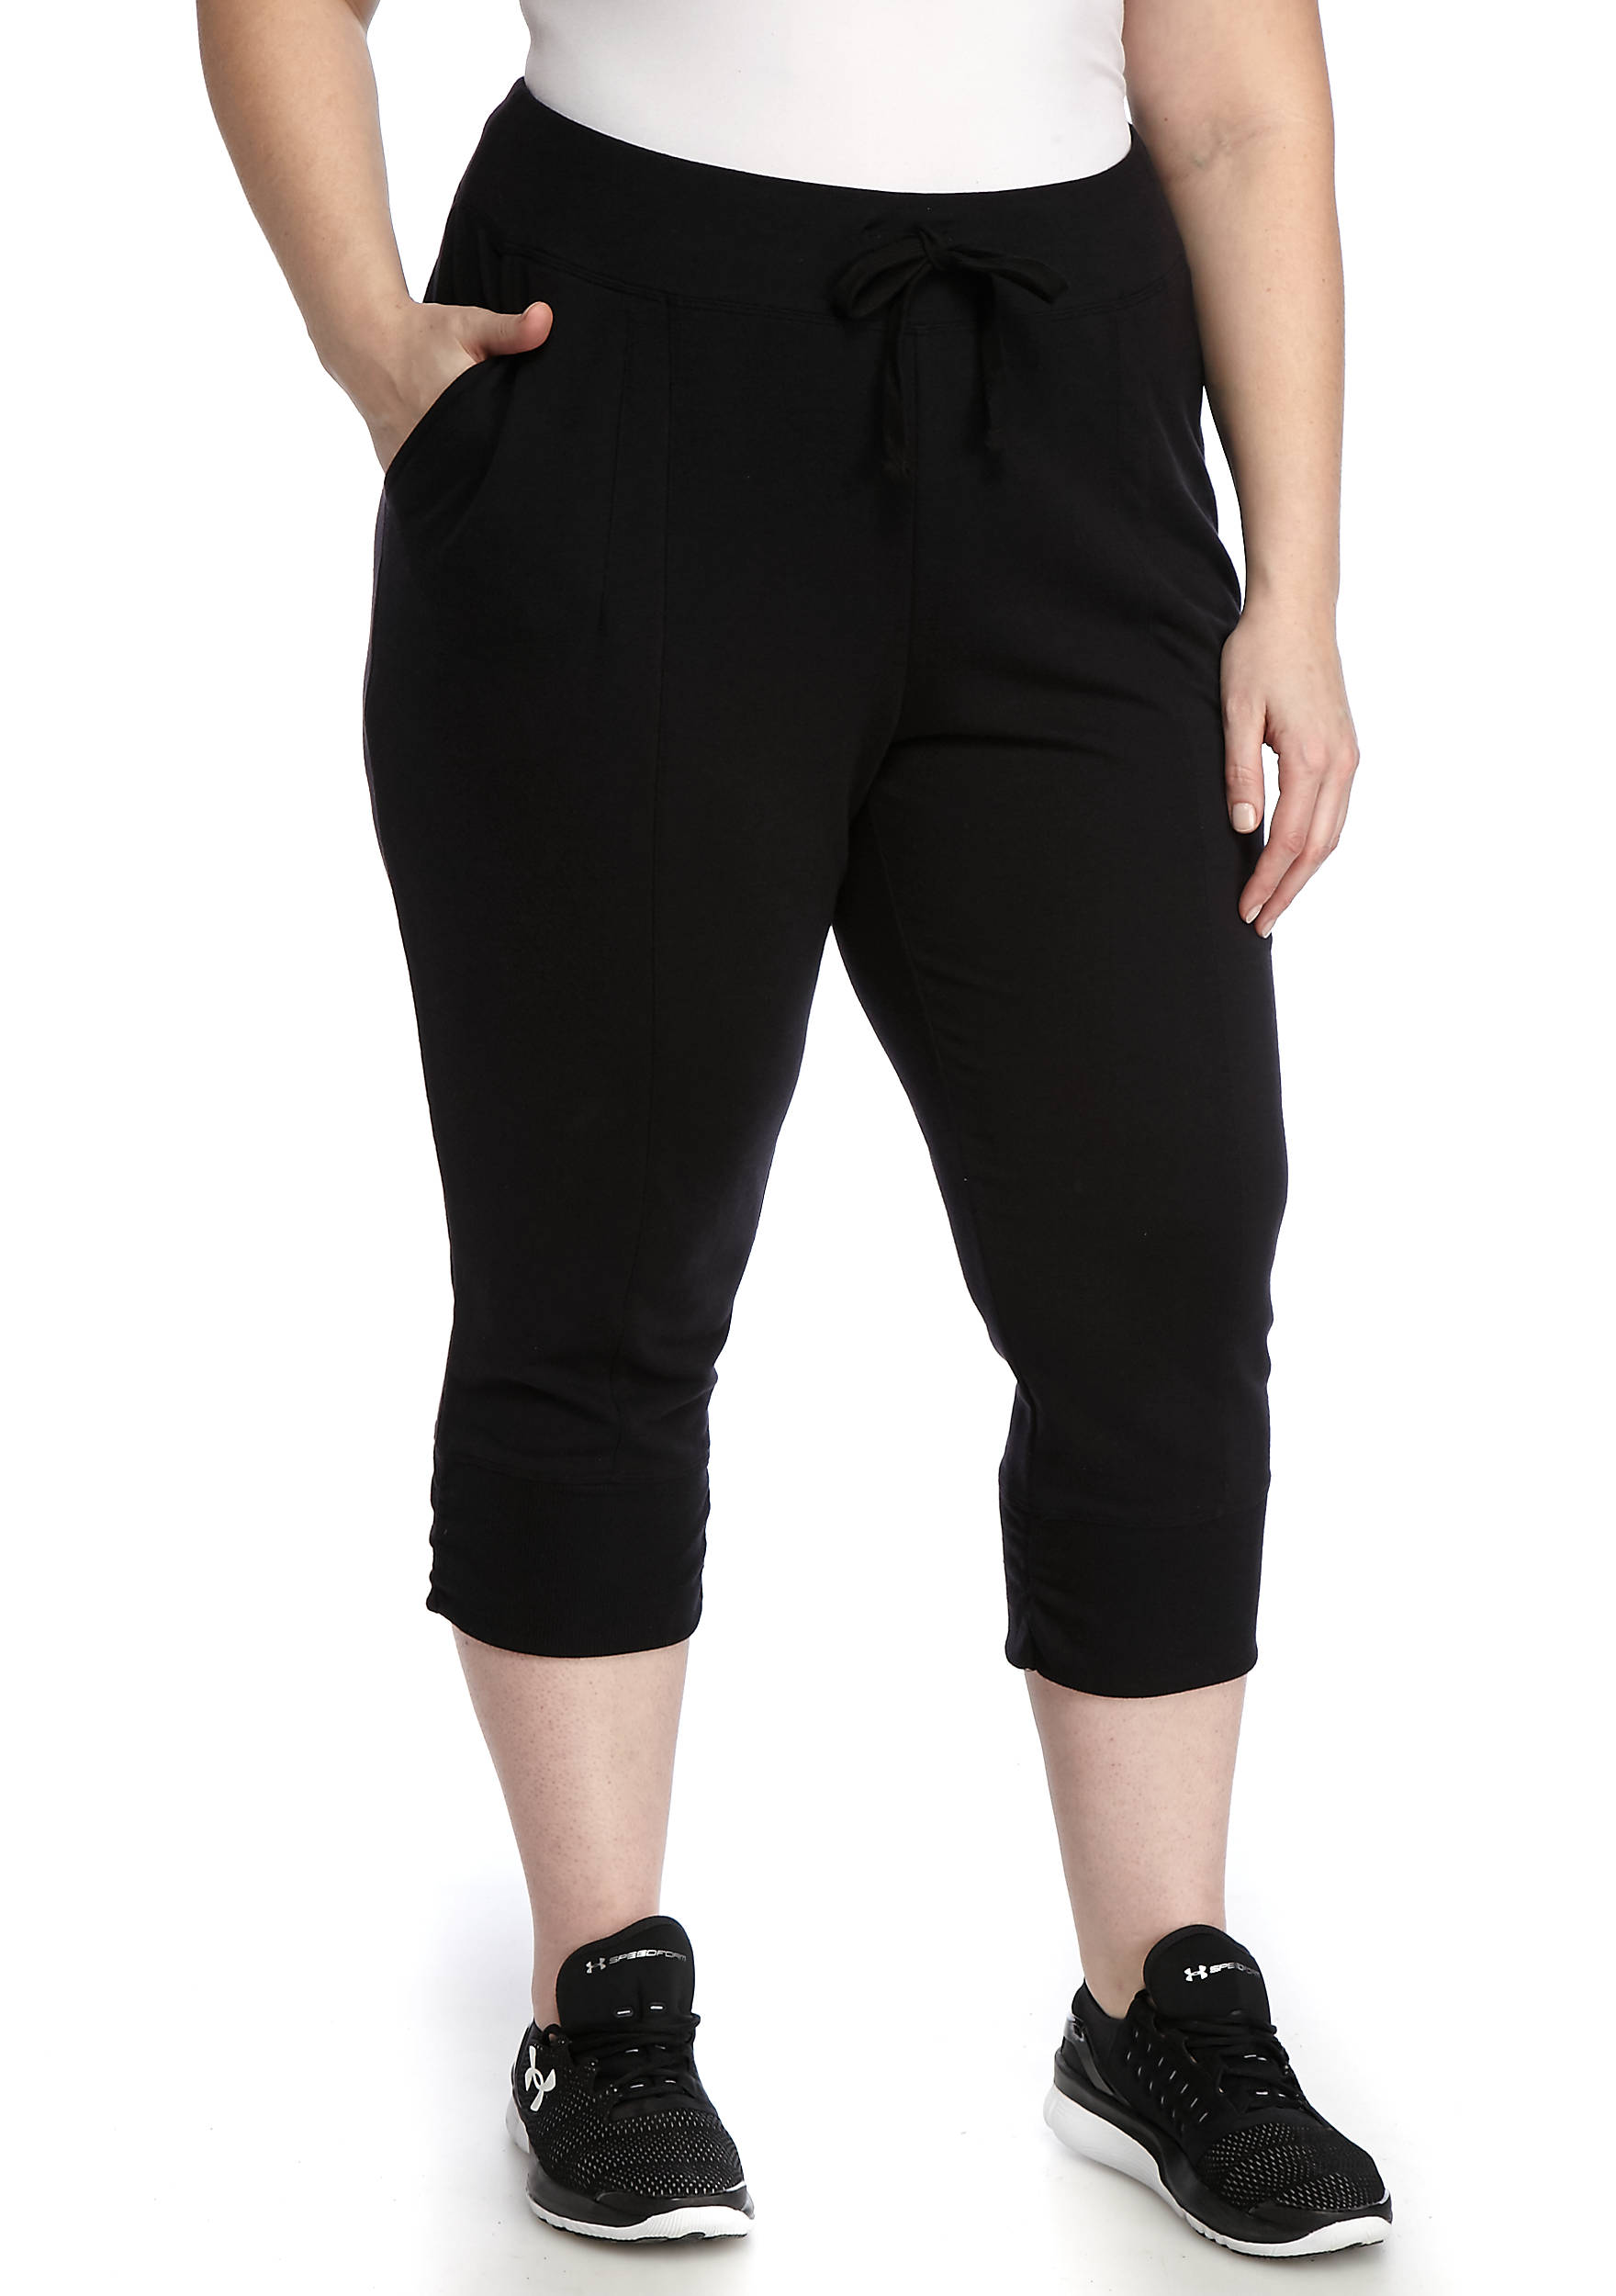 be inspired® Plus Size Jogger Capris | belk